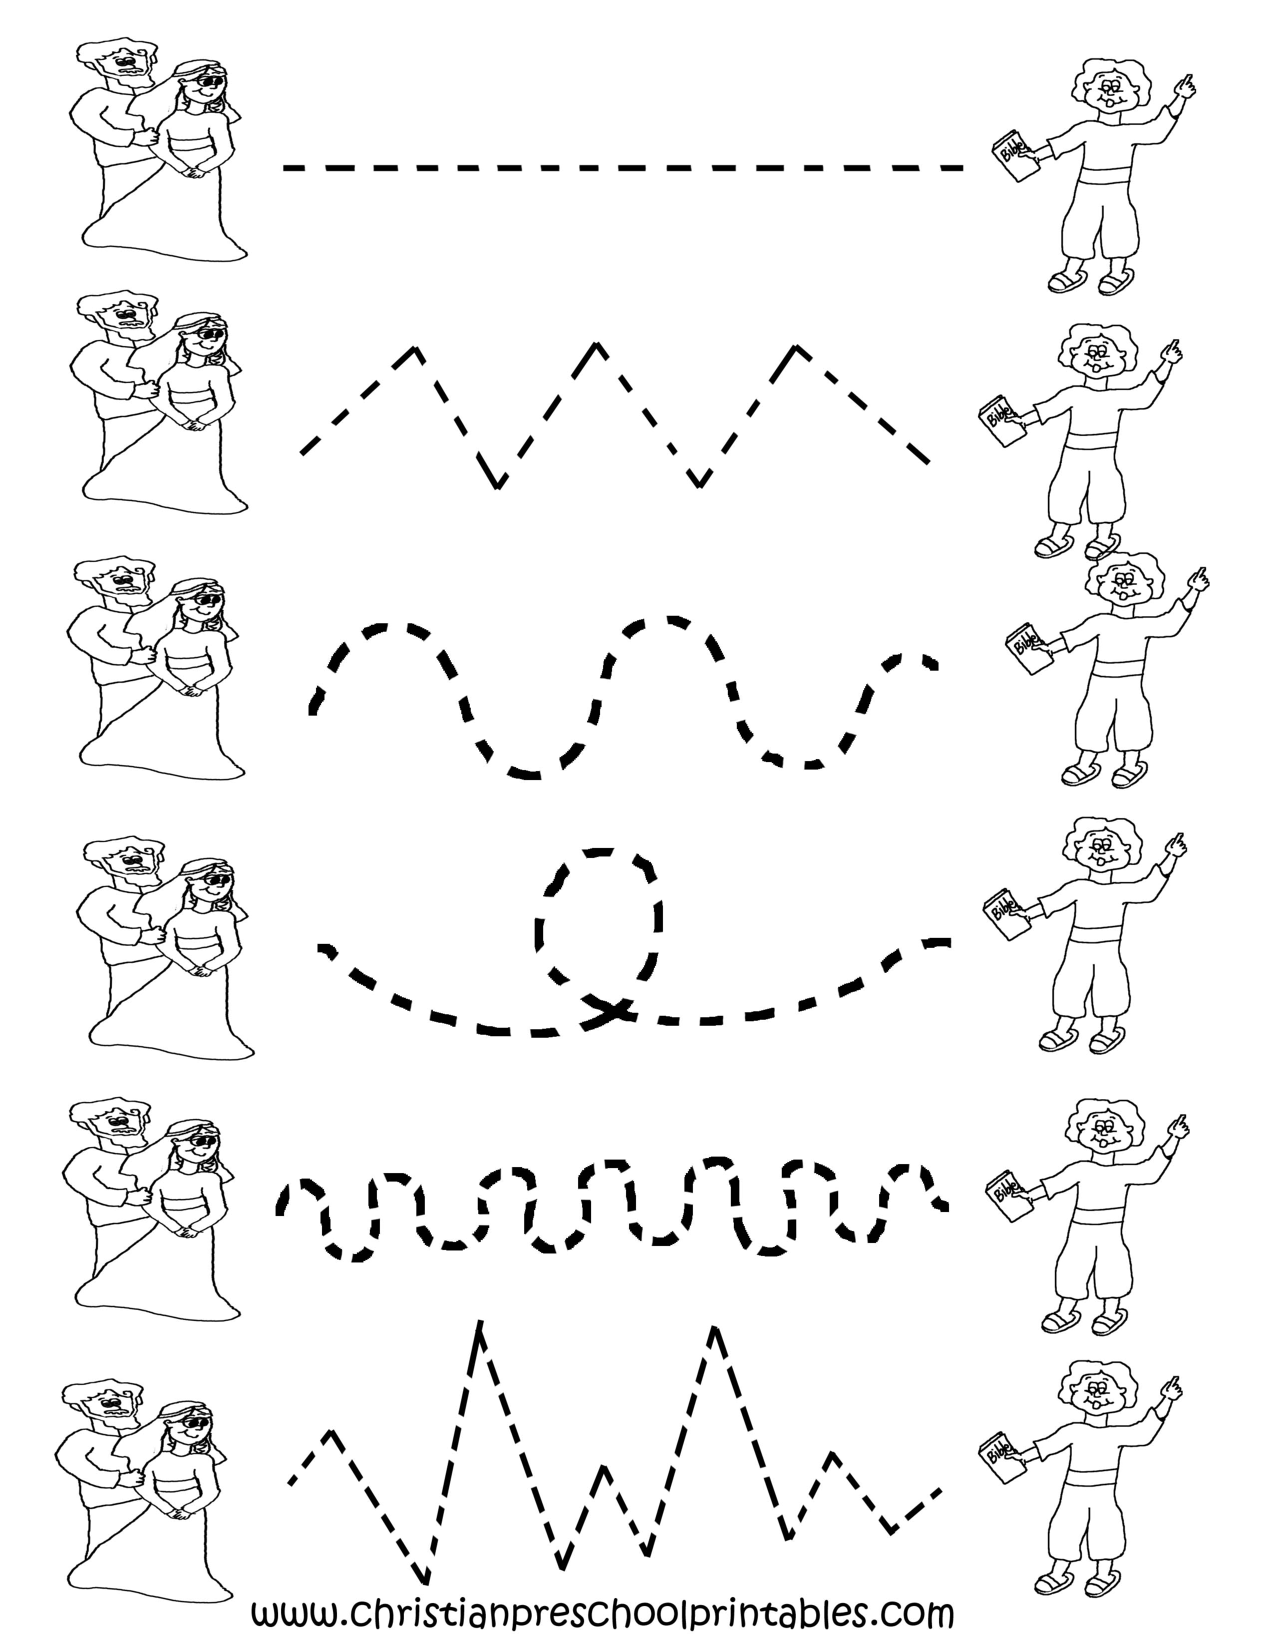 Worksheets Tracer Worksheets free printable worksheets for preschool tracing worksheets